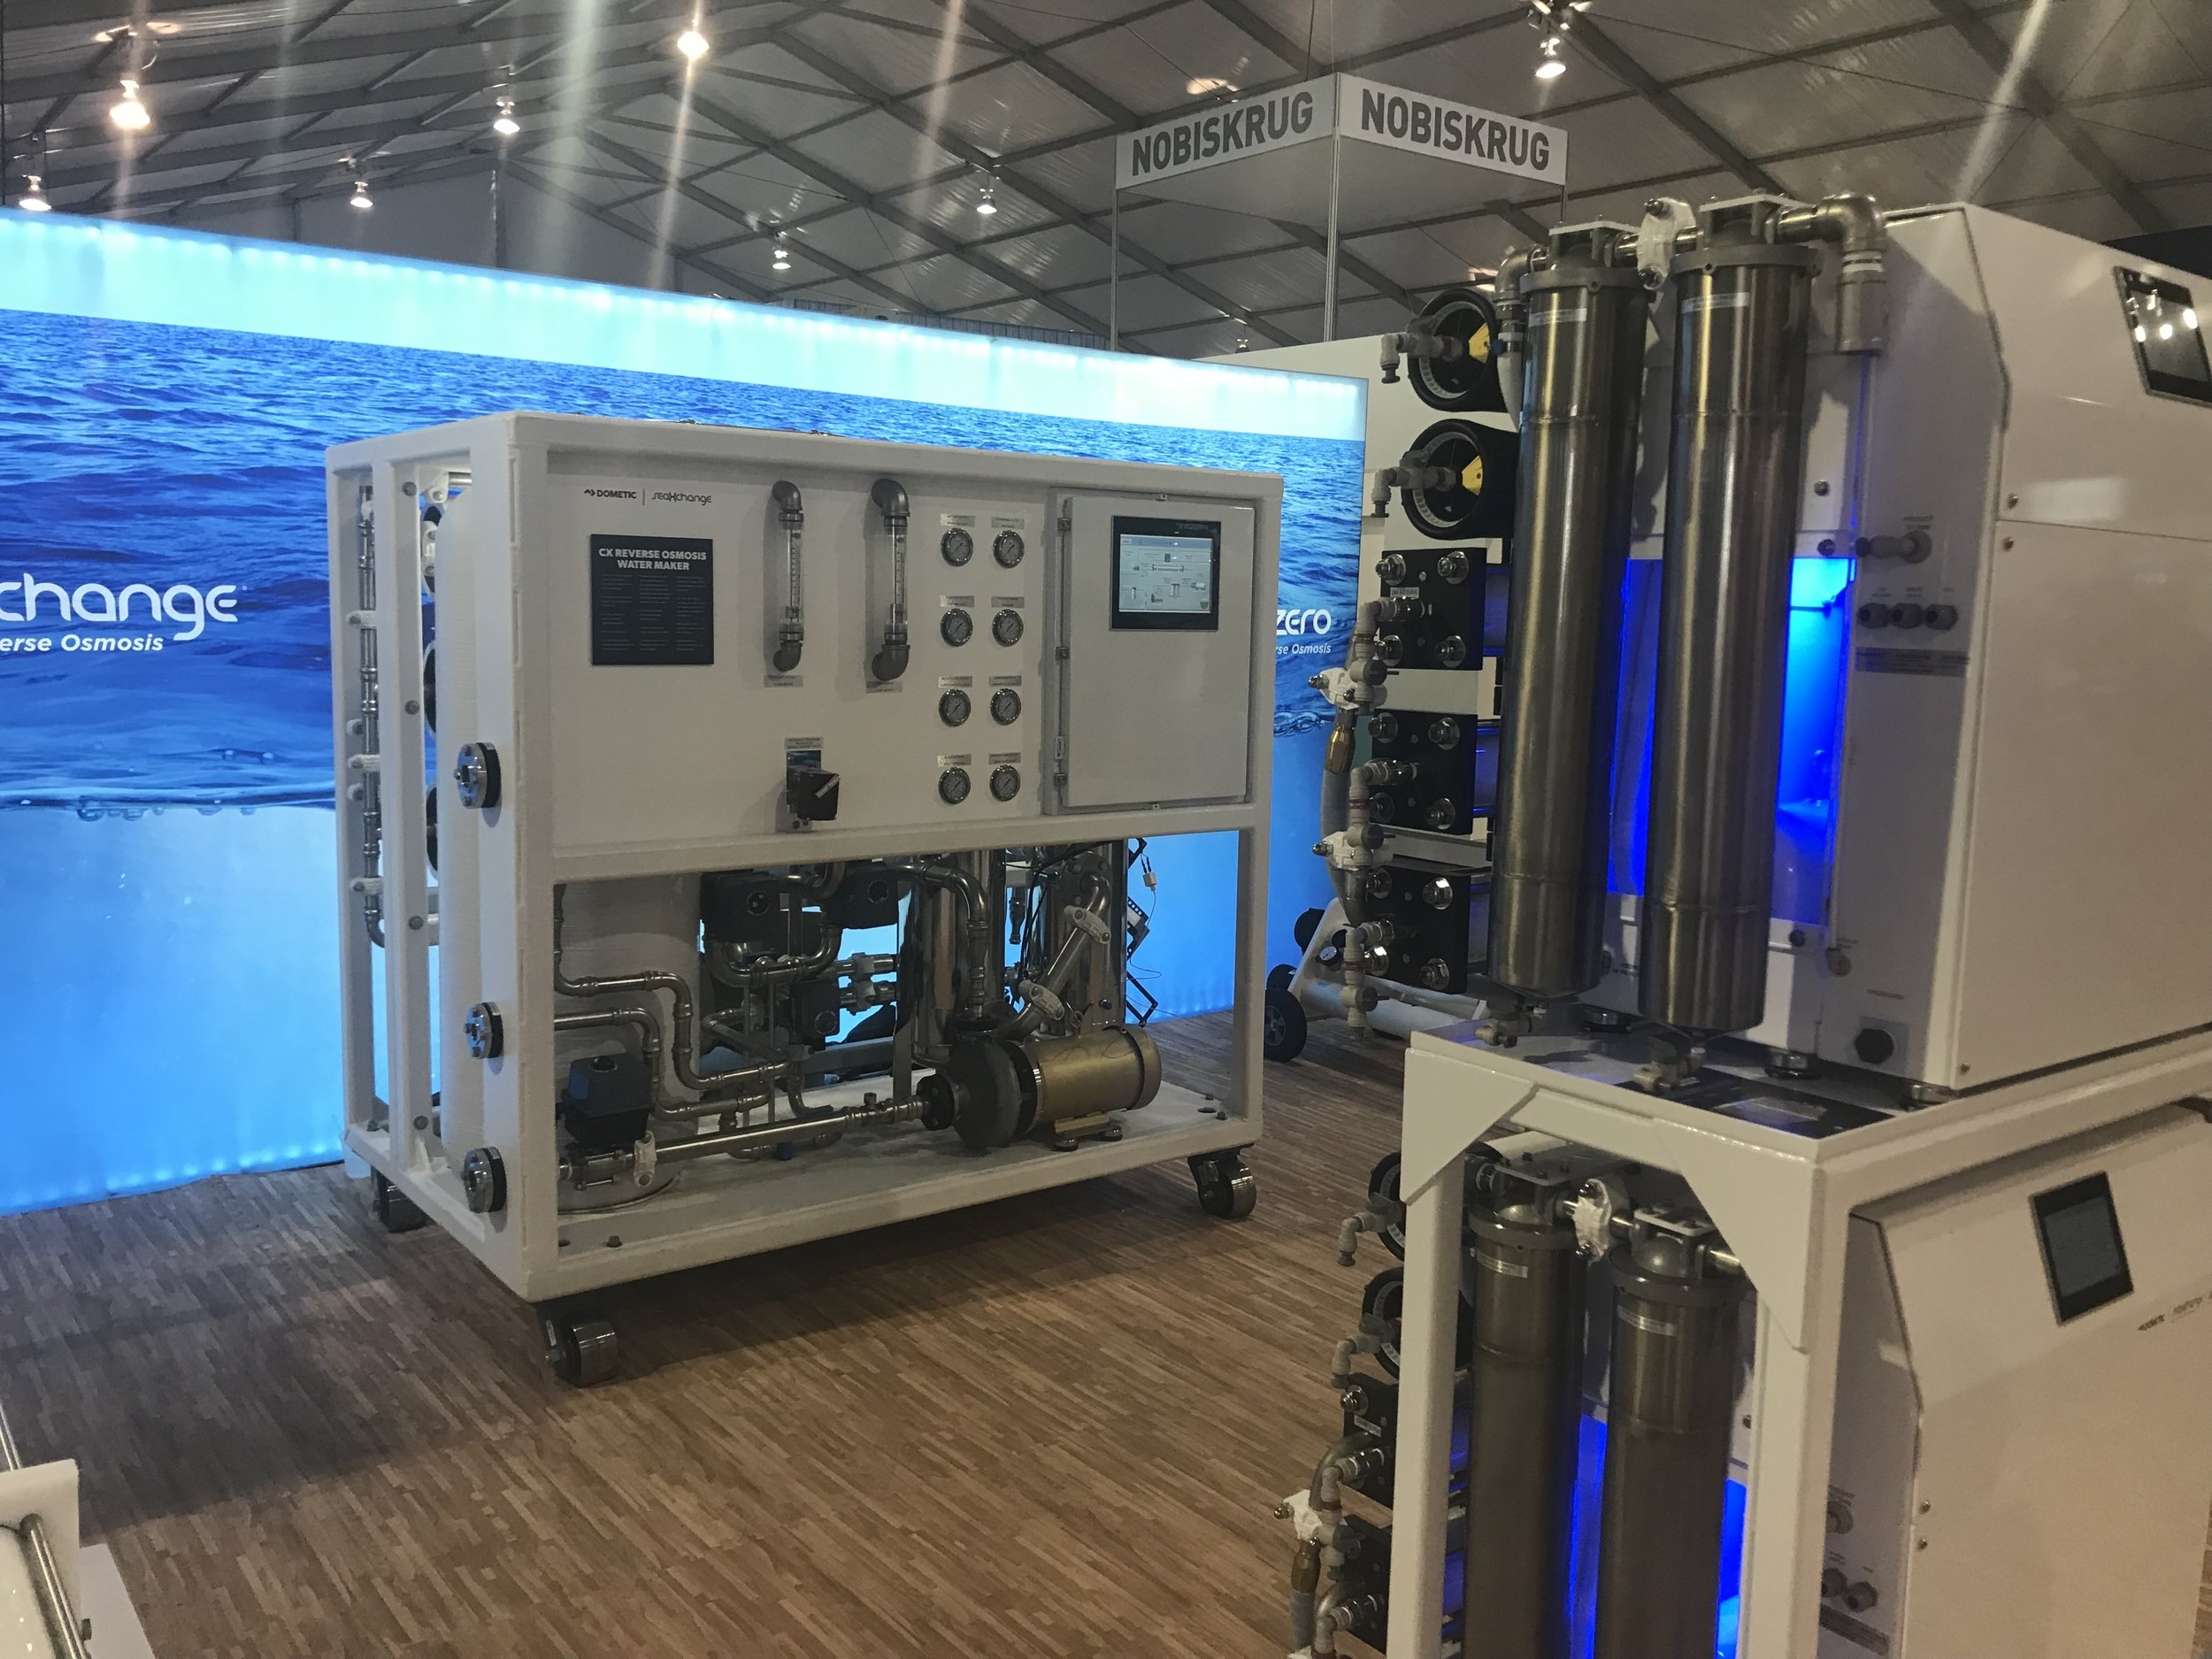 A large watermaker from Dometic as presented at the 2017 Ft. Lauderdale Boat Show. Smaller systems in the foreground.